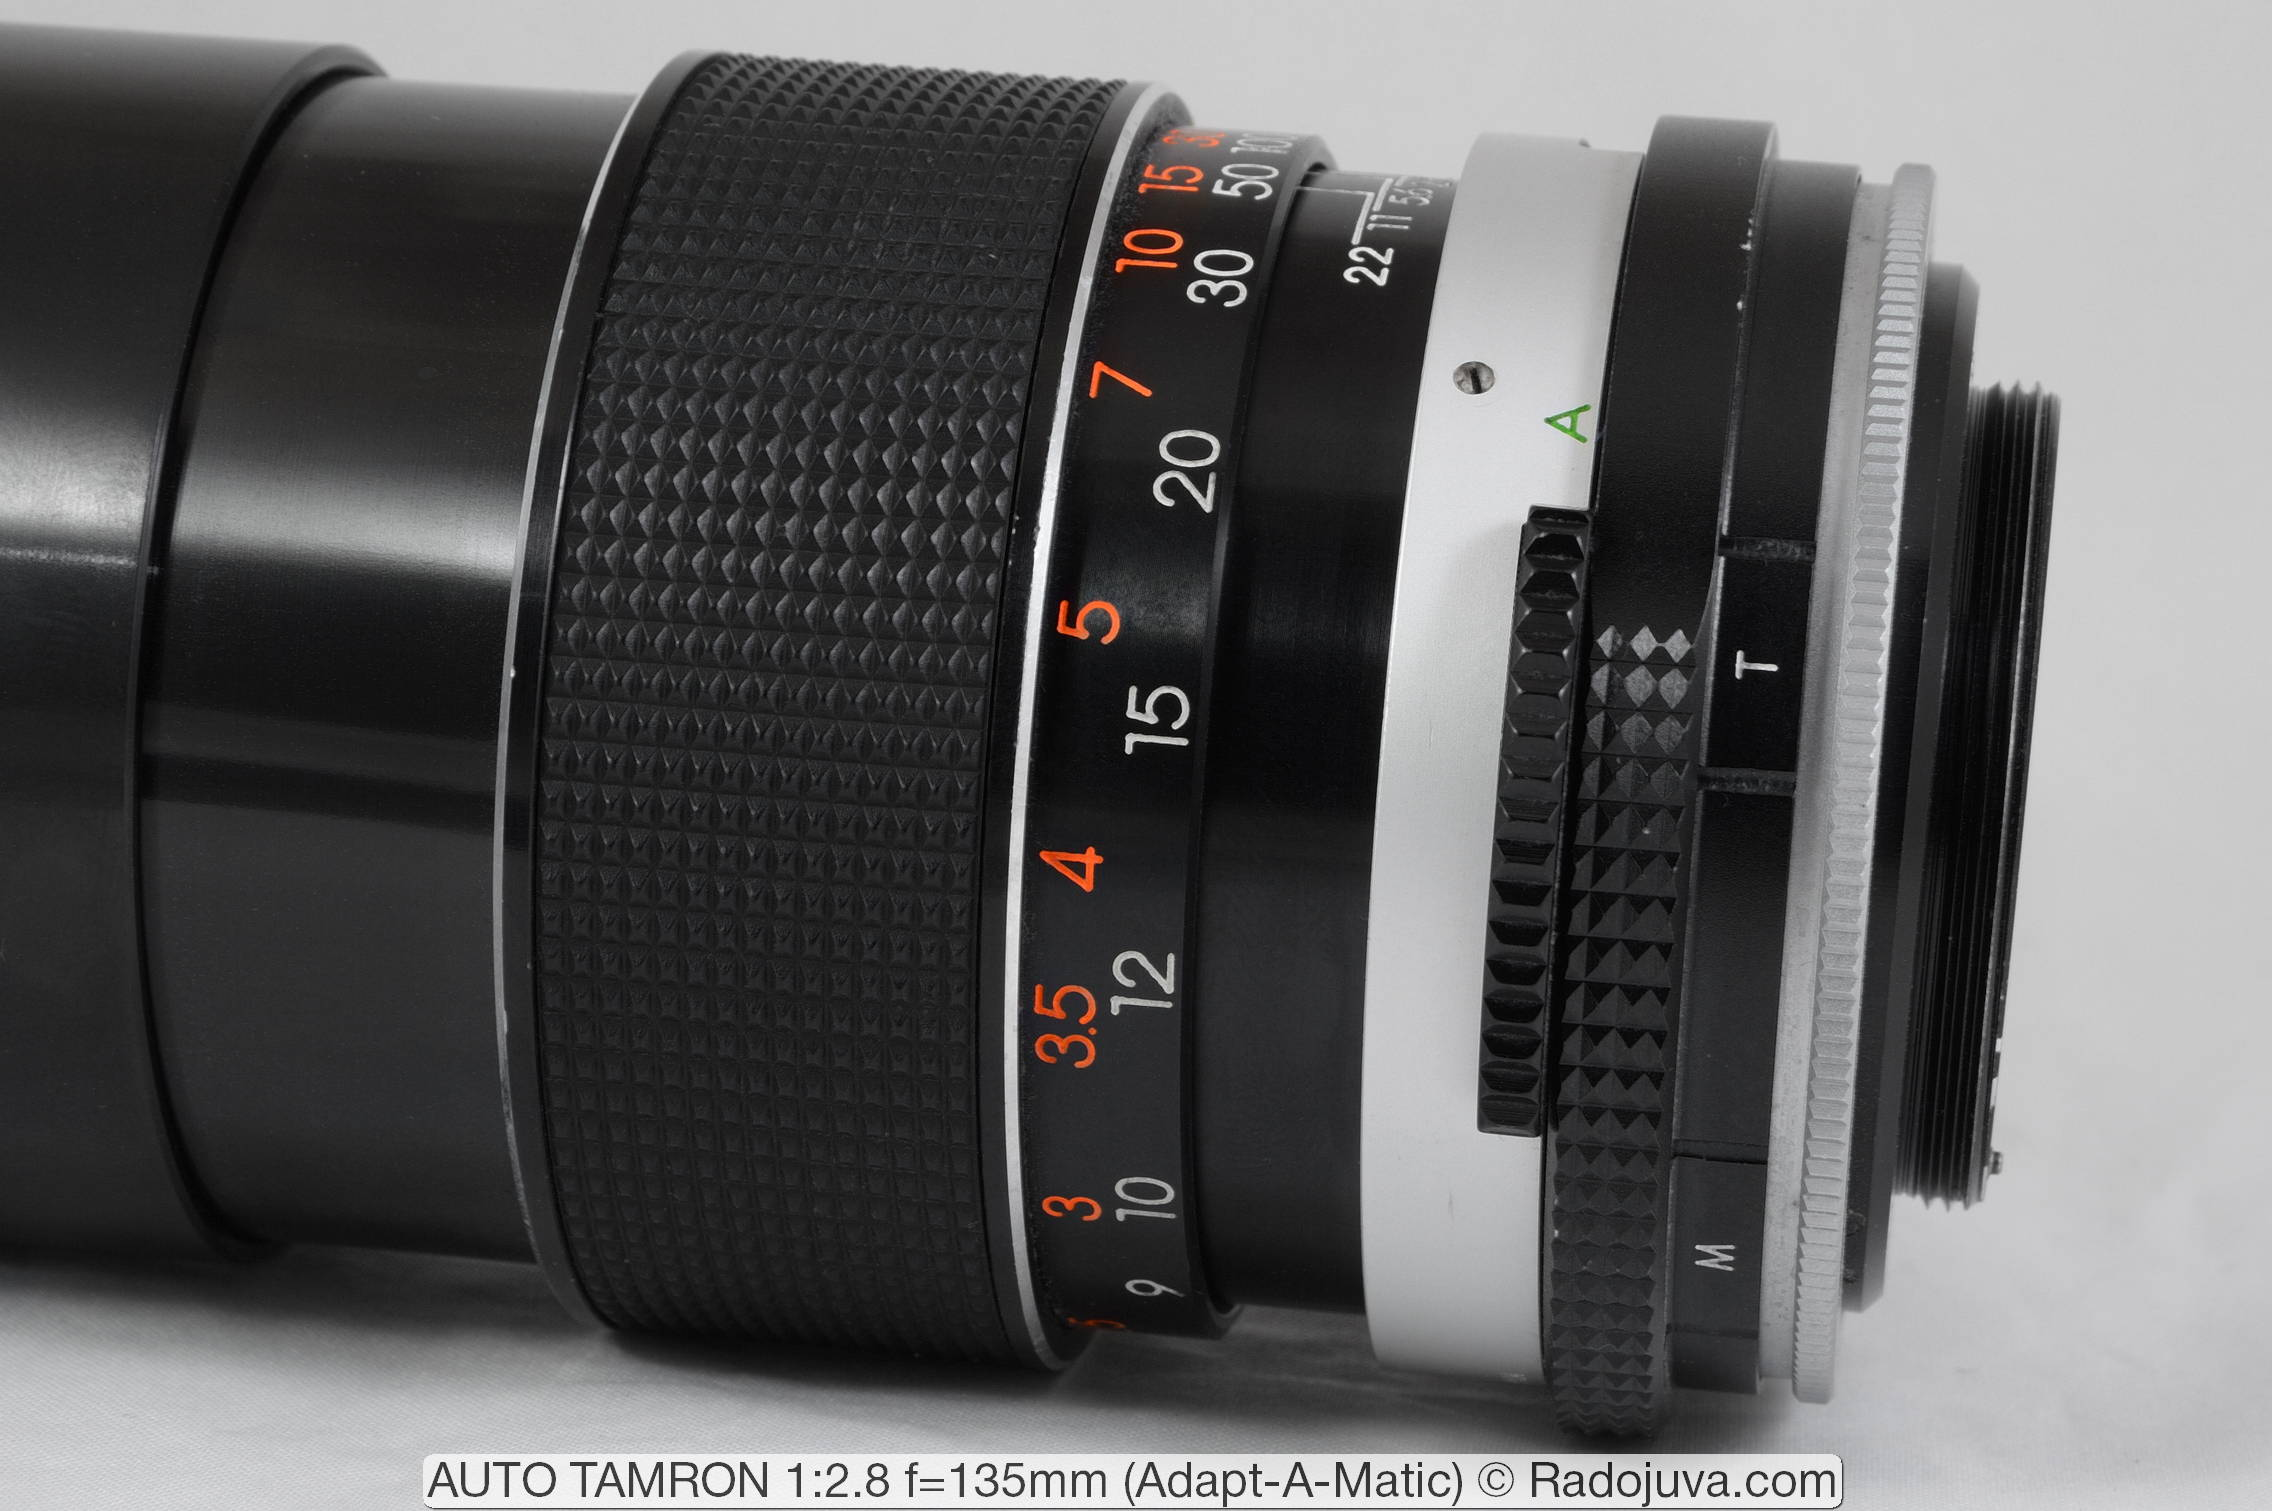 AUTO TAMRON 1:2.8 f=135mm (Adapt-A-Matic)